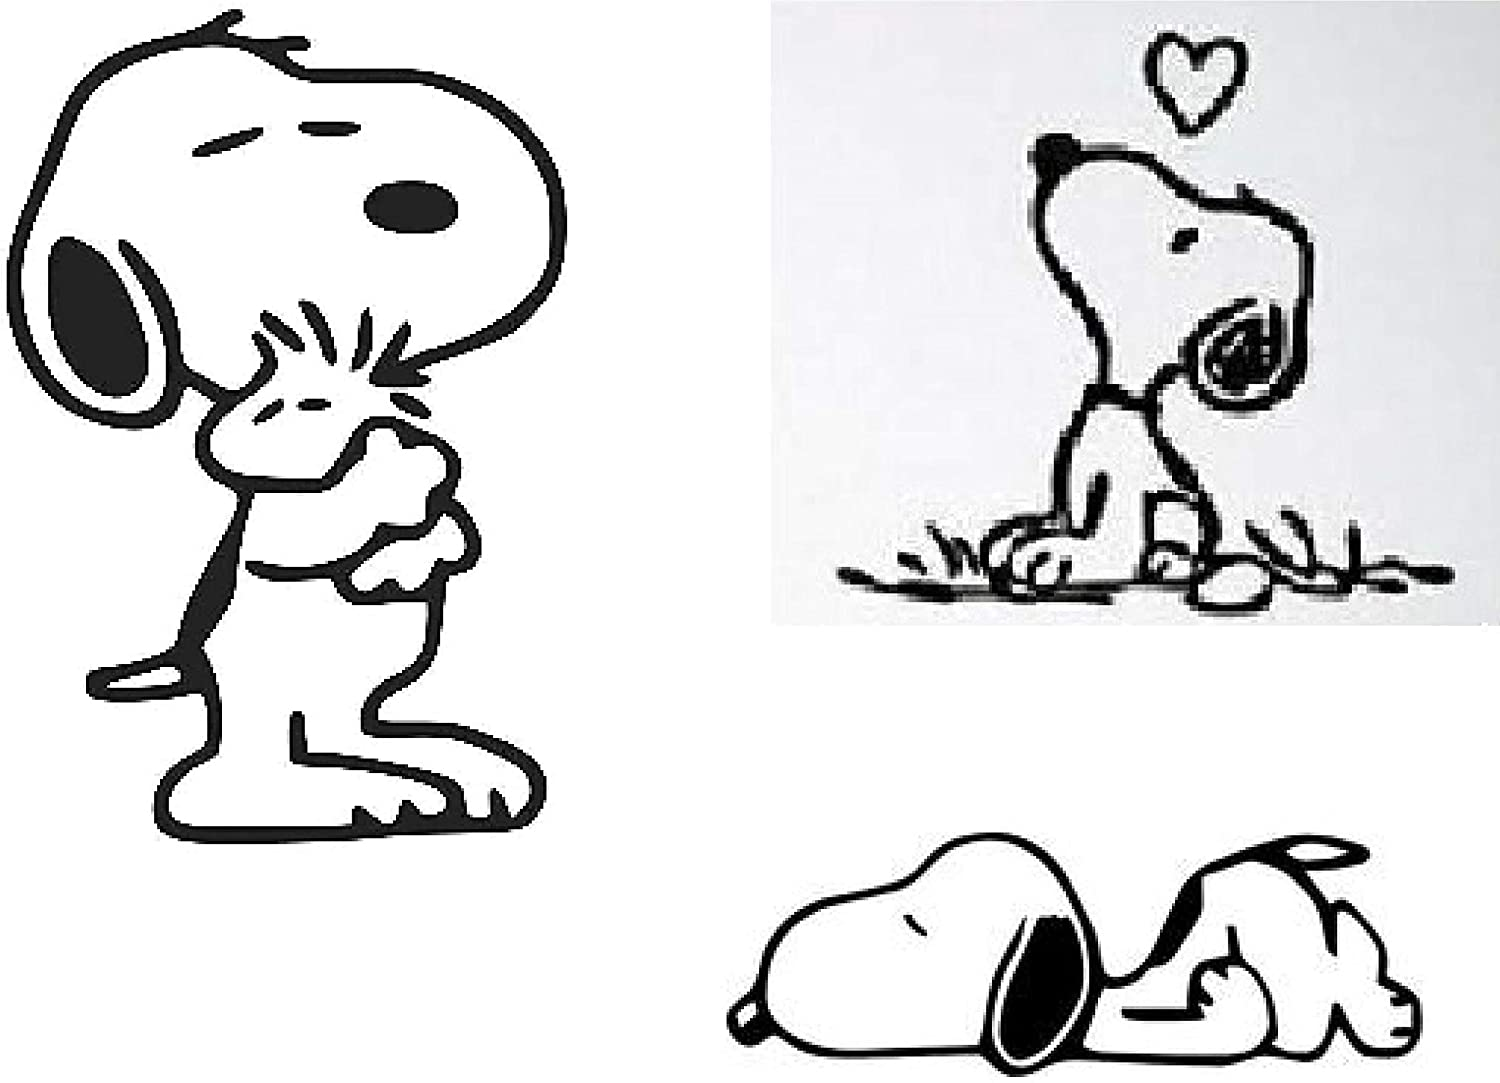 Snoopy Woodstock Cool Funny Dog Car Truck Window Vinyl Decal Sticker 12 COLORS